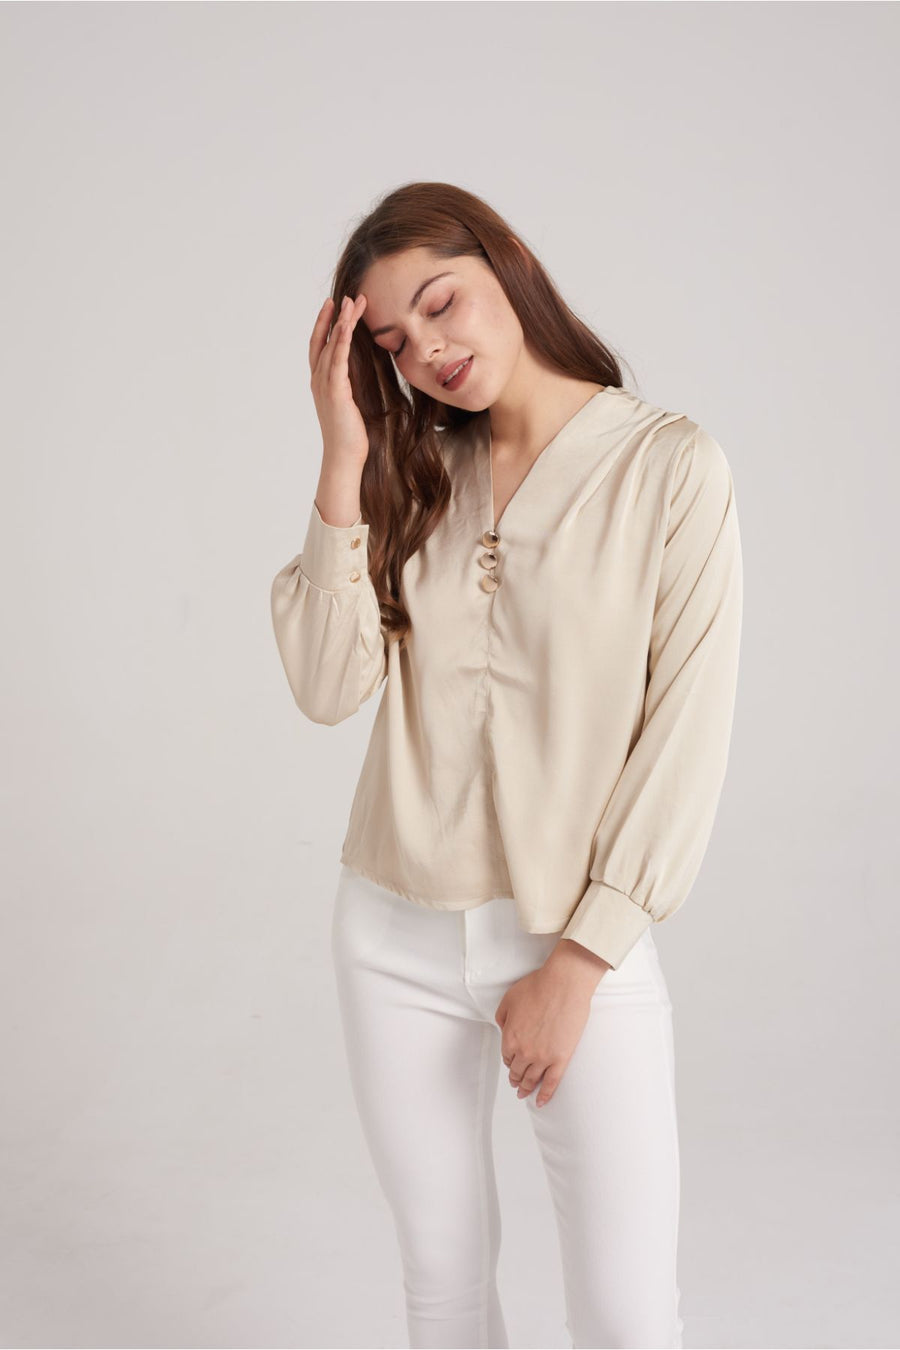 Mantra Pakistan Satin V-Neck Top with 3 Gold Button | TOPS